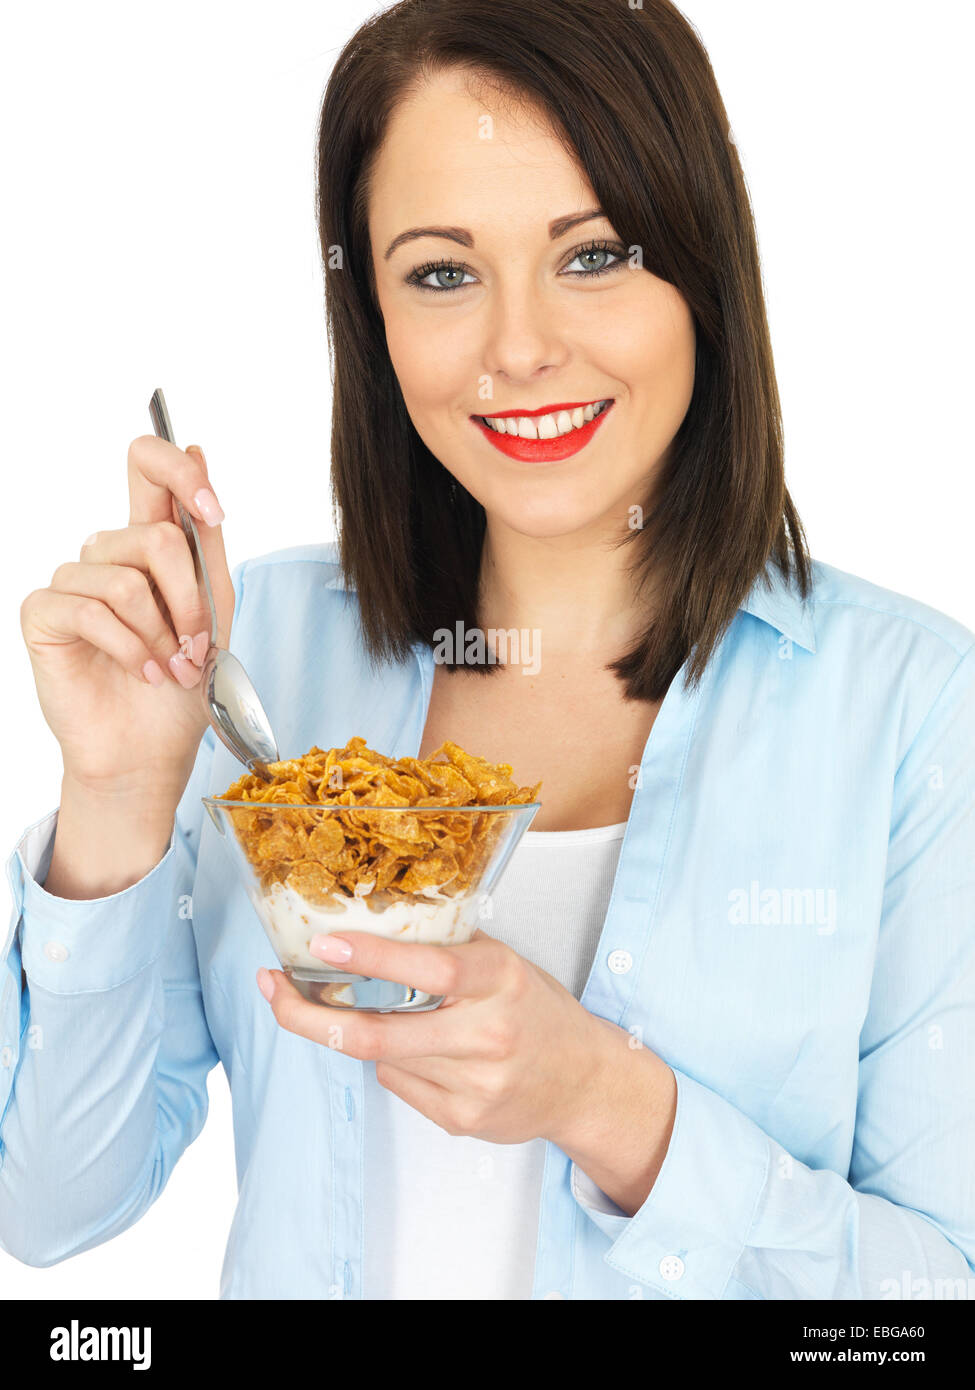 Young Attractive Twenty Something Woman Eating Breakfast Cereals - Stock Image